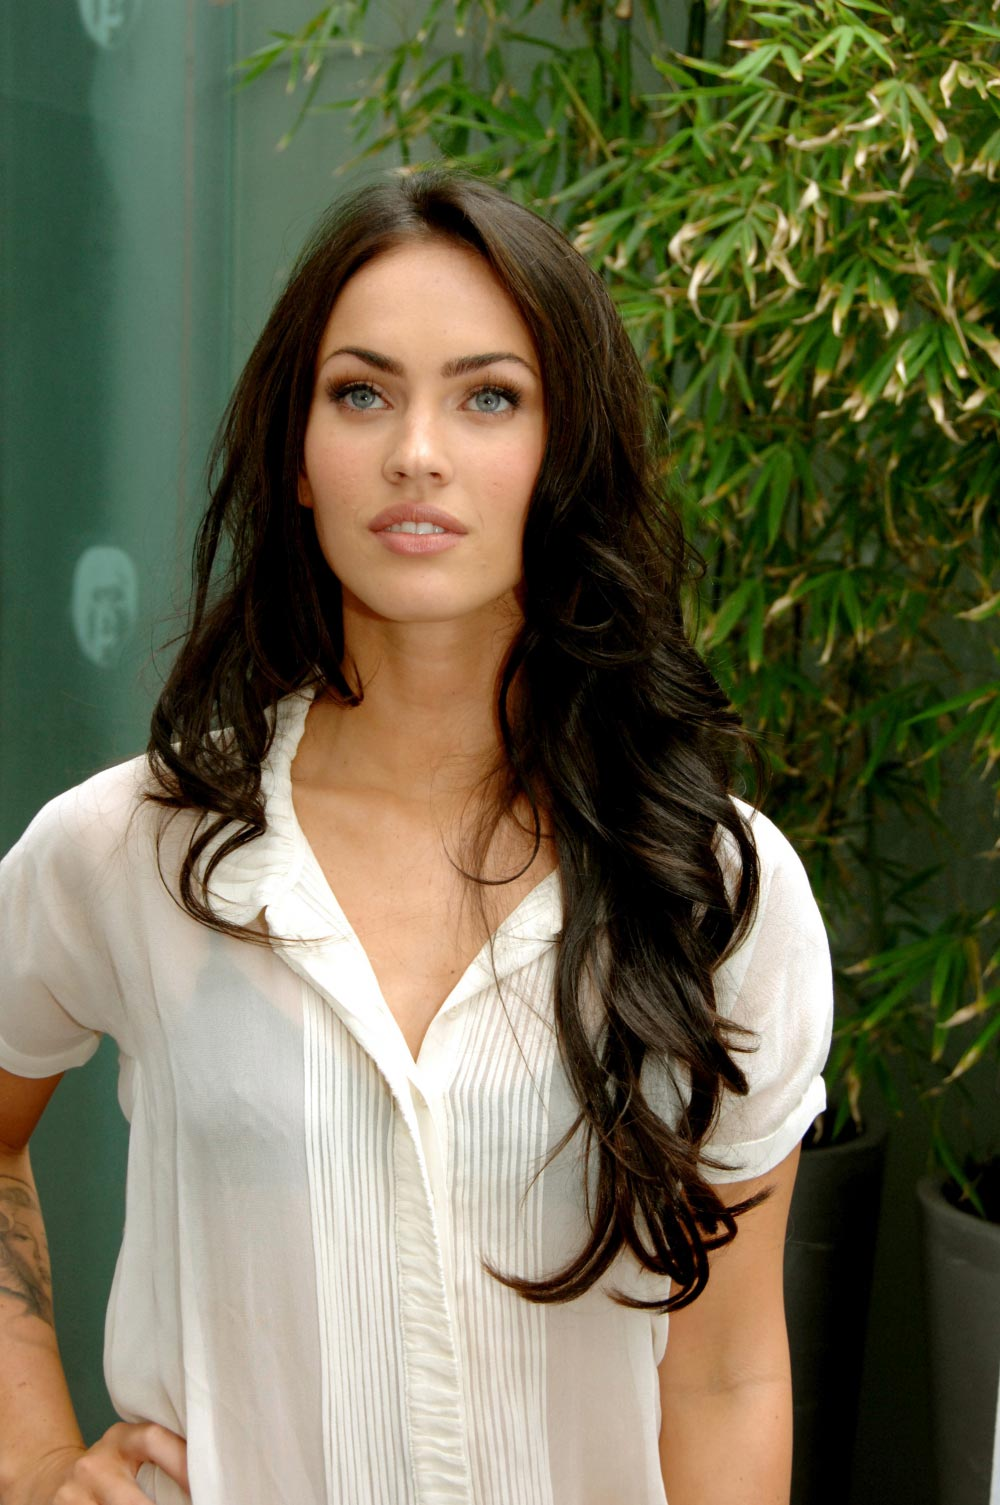 Megan Fox Wishes To Star In Lost Boys Remake Filmofilia